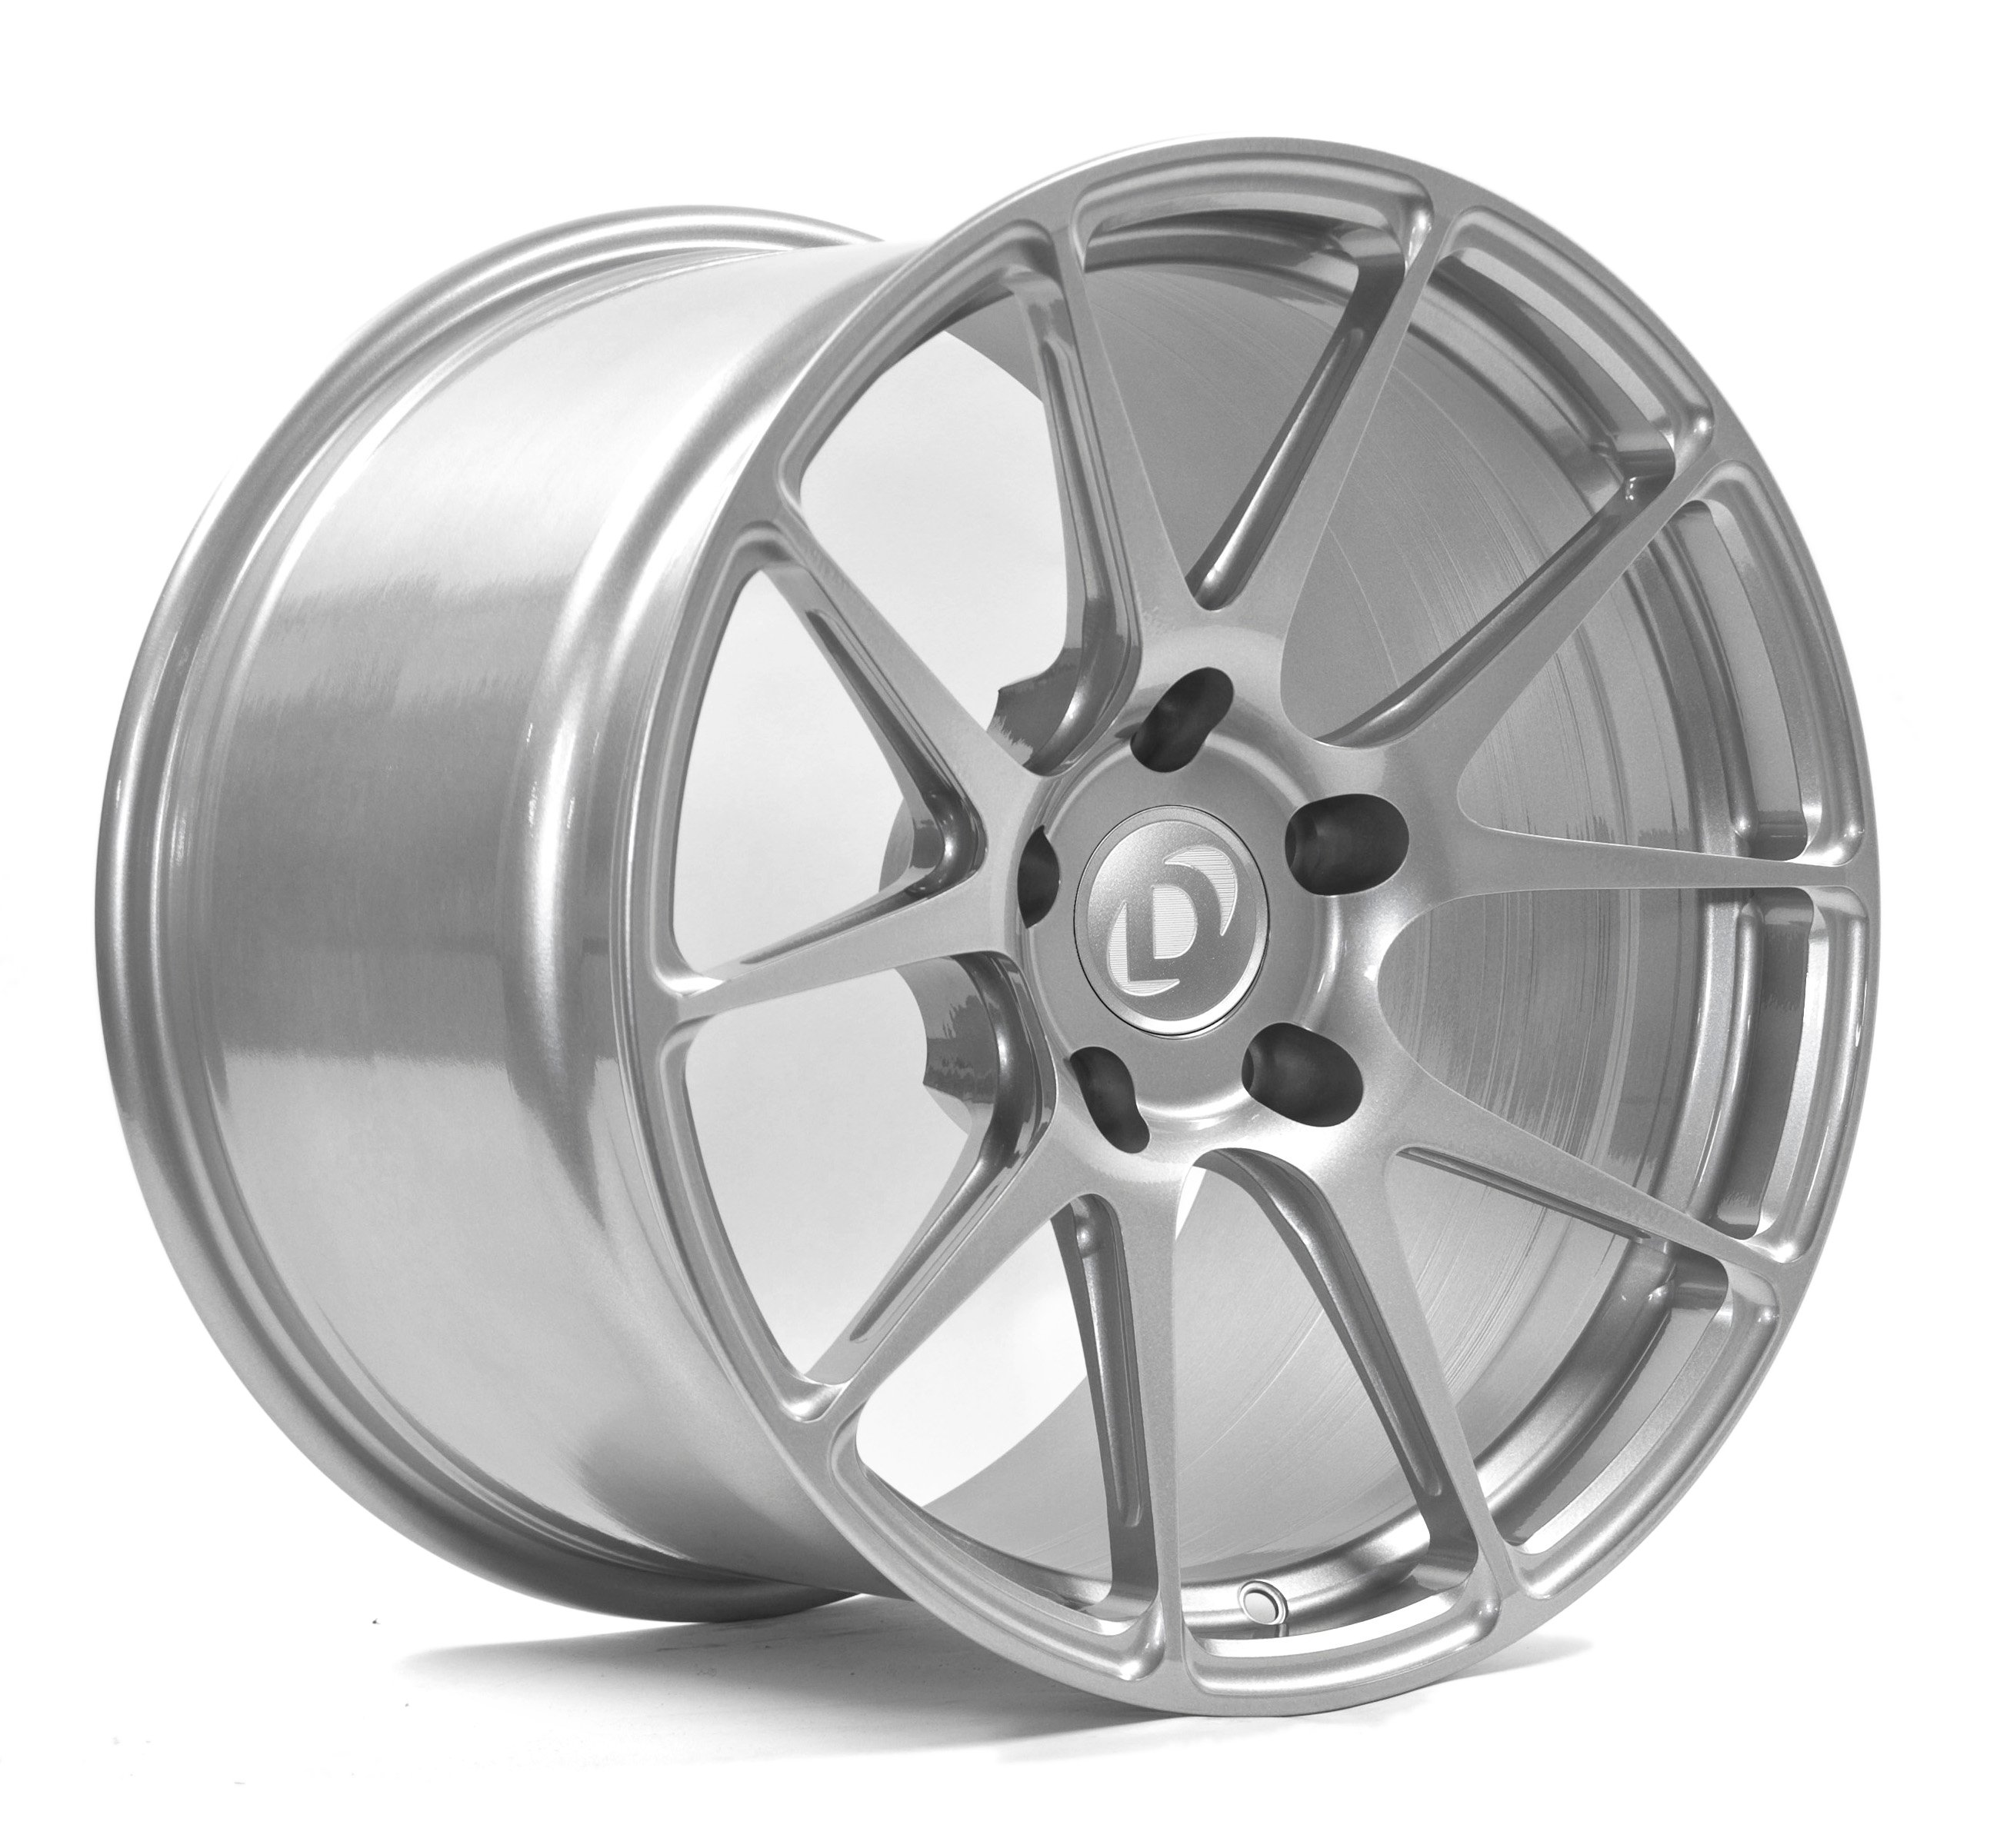 Dinan D750-0072-GA1R-SIL Forgeline GA1R Performance Wheel